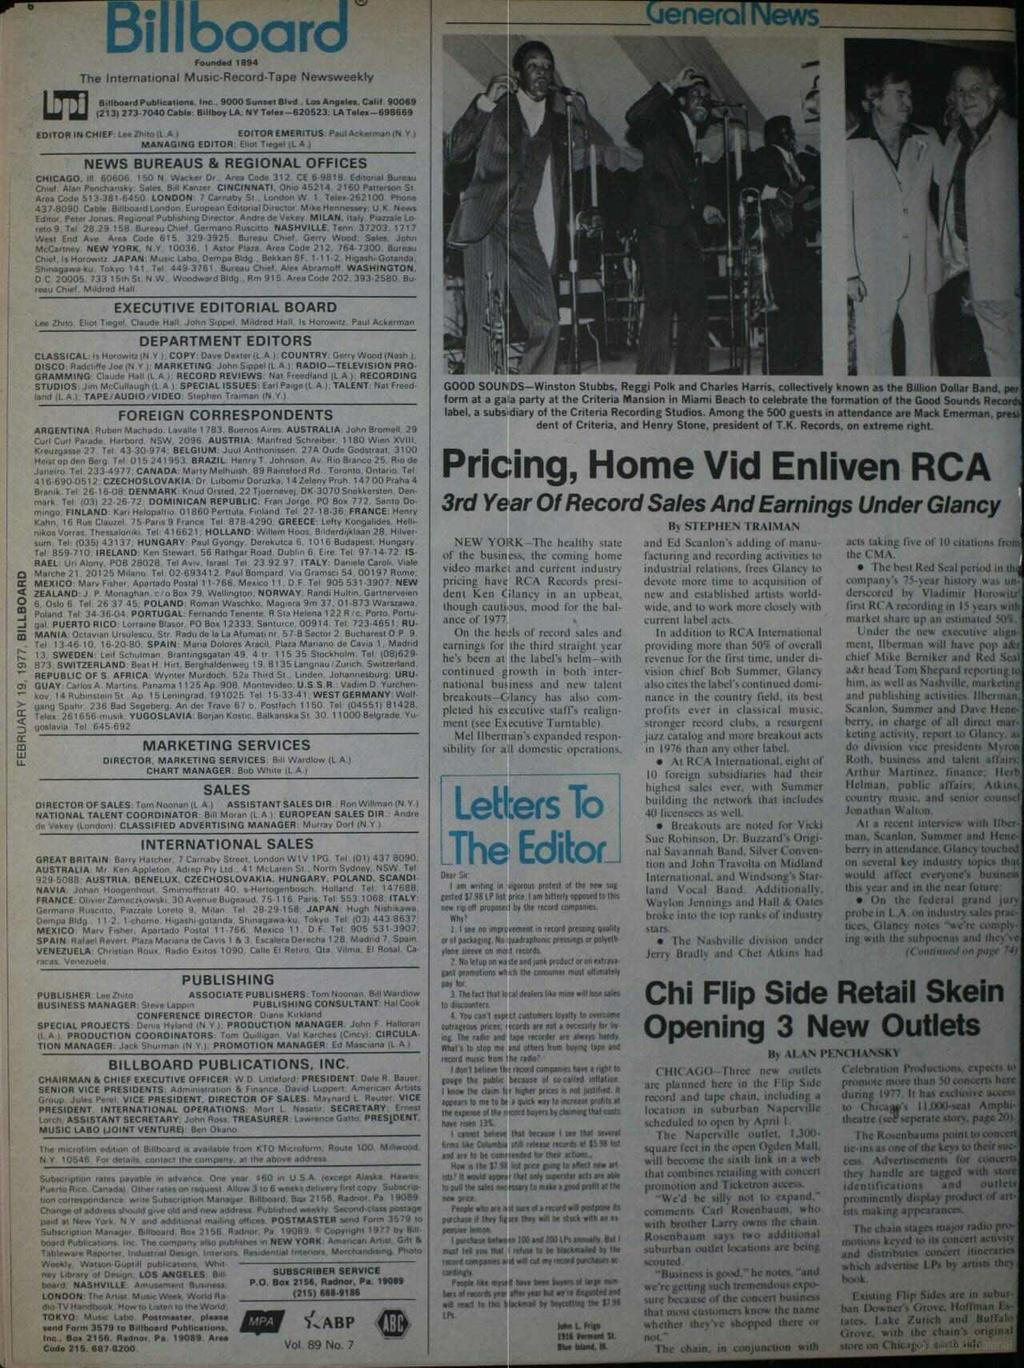 T Billboard Founded 1894 General News The nternational Music - Record -Tape Newsweekly Billboard Publications. nc 9000 Sunset Blvd Loa Angeles. Card 90089 (213) 273.7040 Cable Bellboy LA.